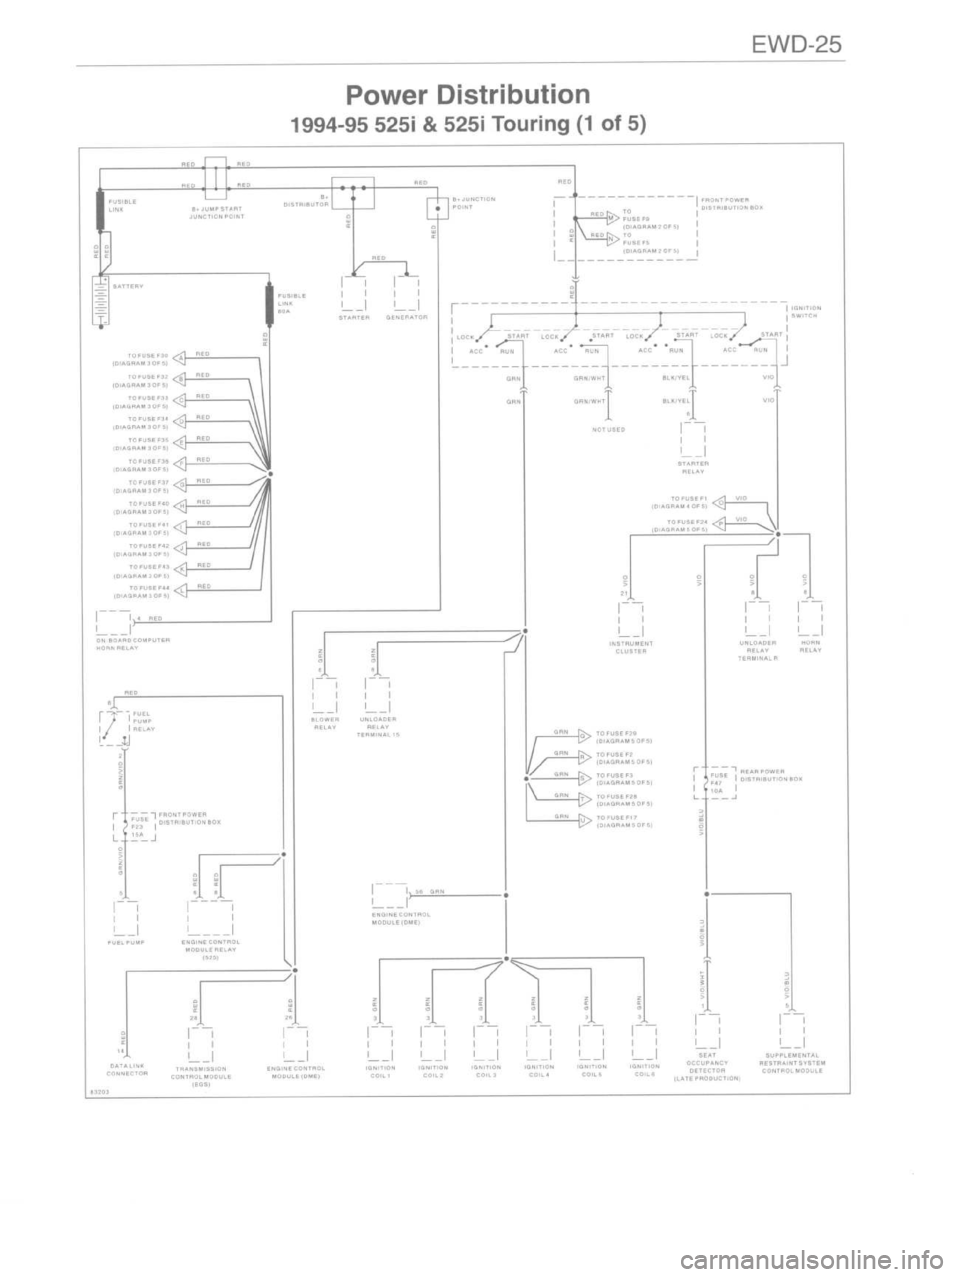 2008 Saab 9 3 Fuse Box Diagram additionally 2012 Scion Fuse Box in addition Exterior Light Turn Signals And Horns furthermore P 0996b43f802c5368 together with Porsche 911 996 Wiring Diagram. on 2004 saab 9 3 convertible radio wiring